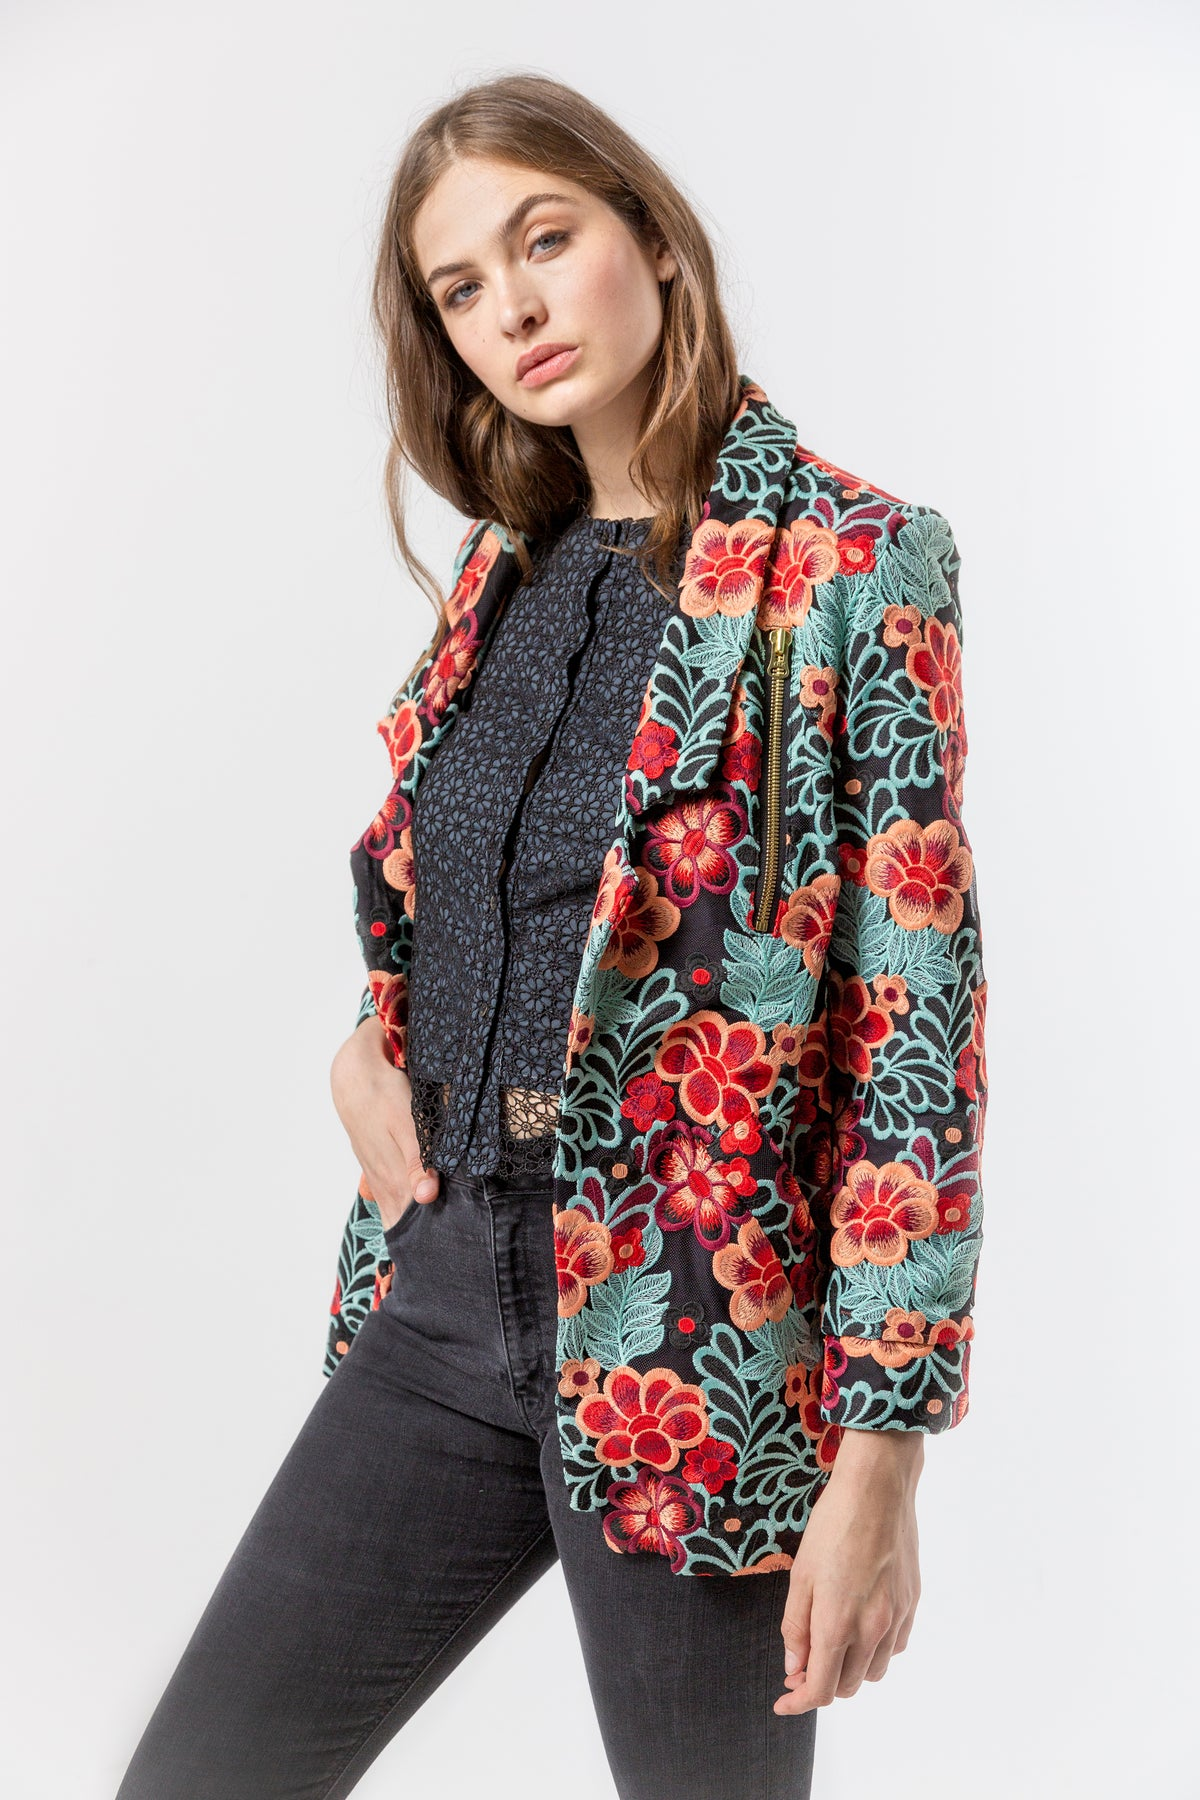 Tichy coat in flamboyant lace